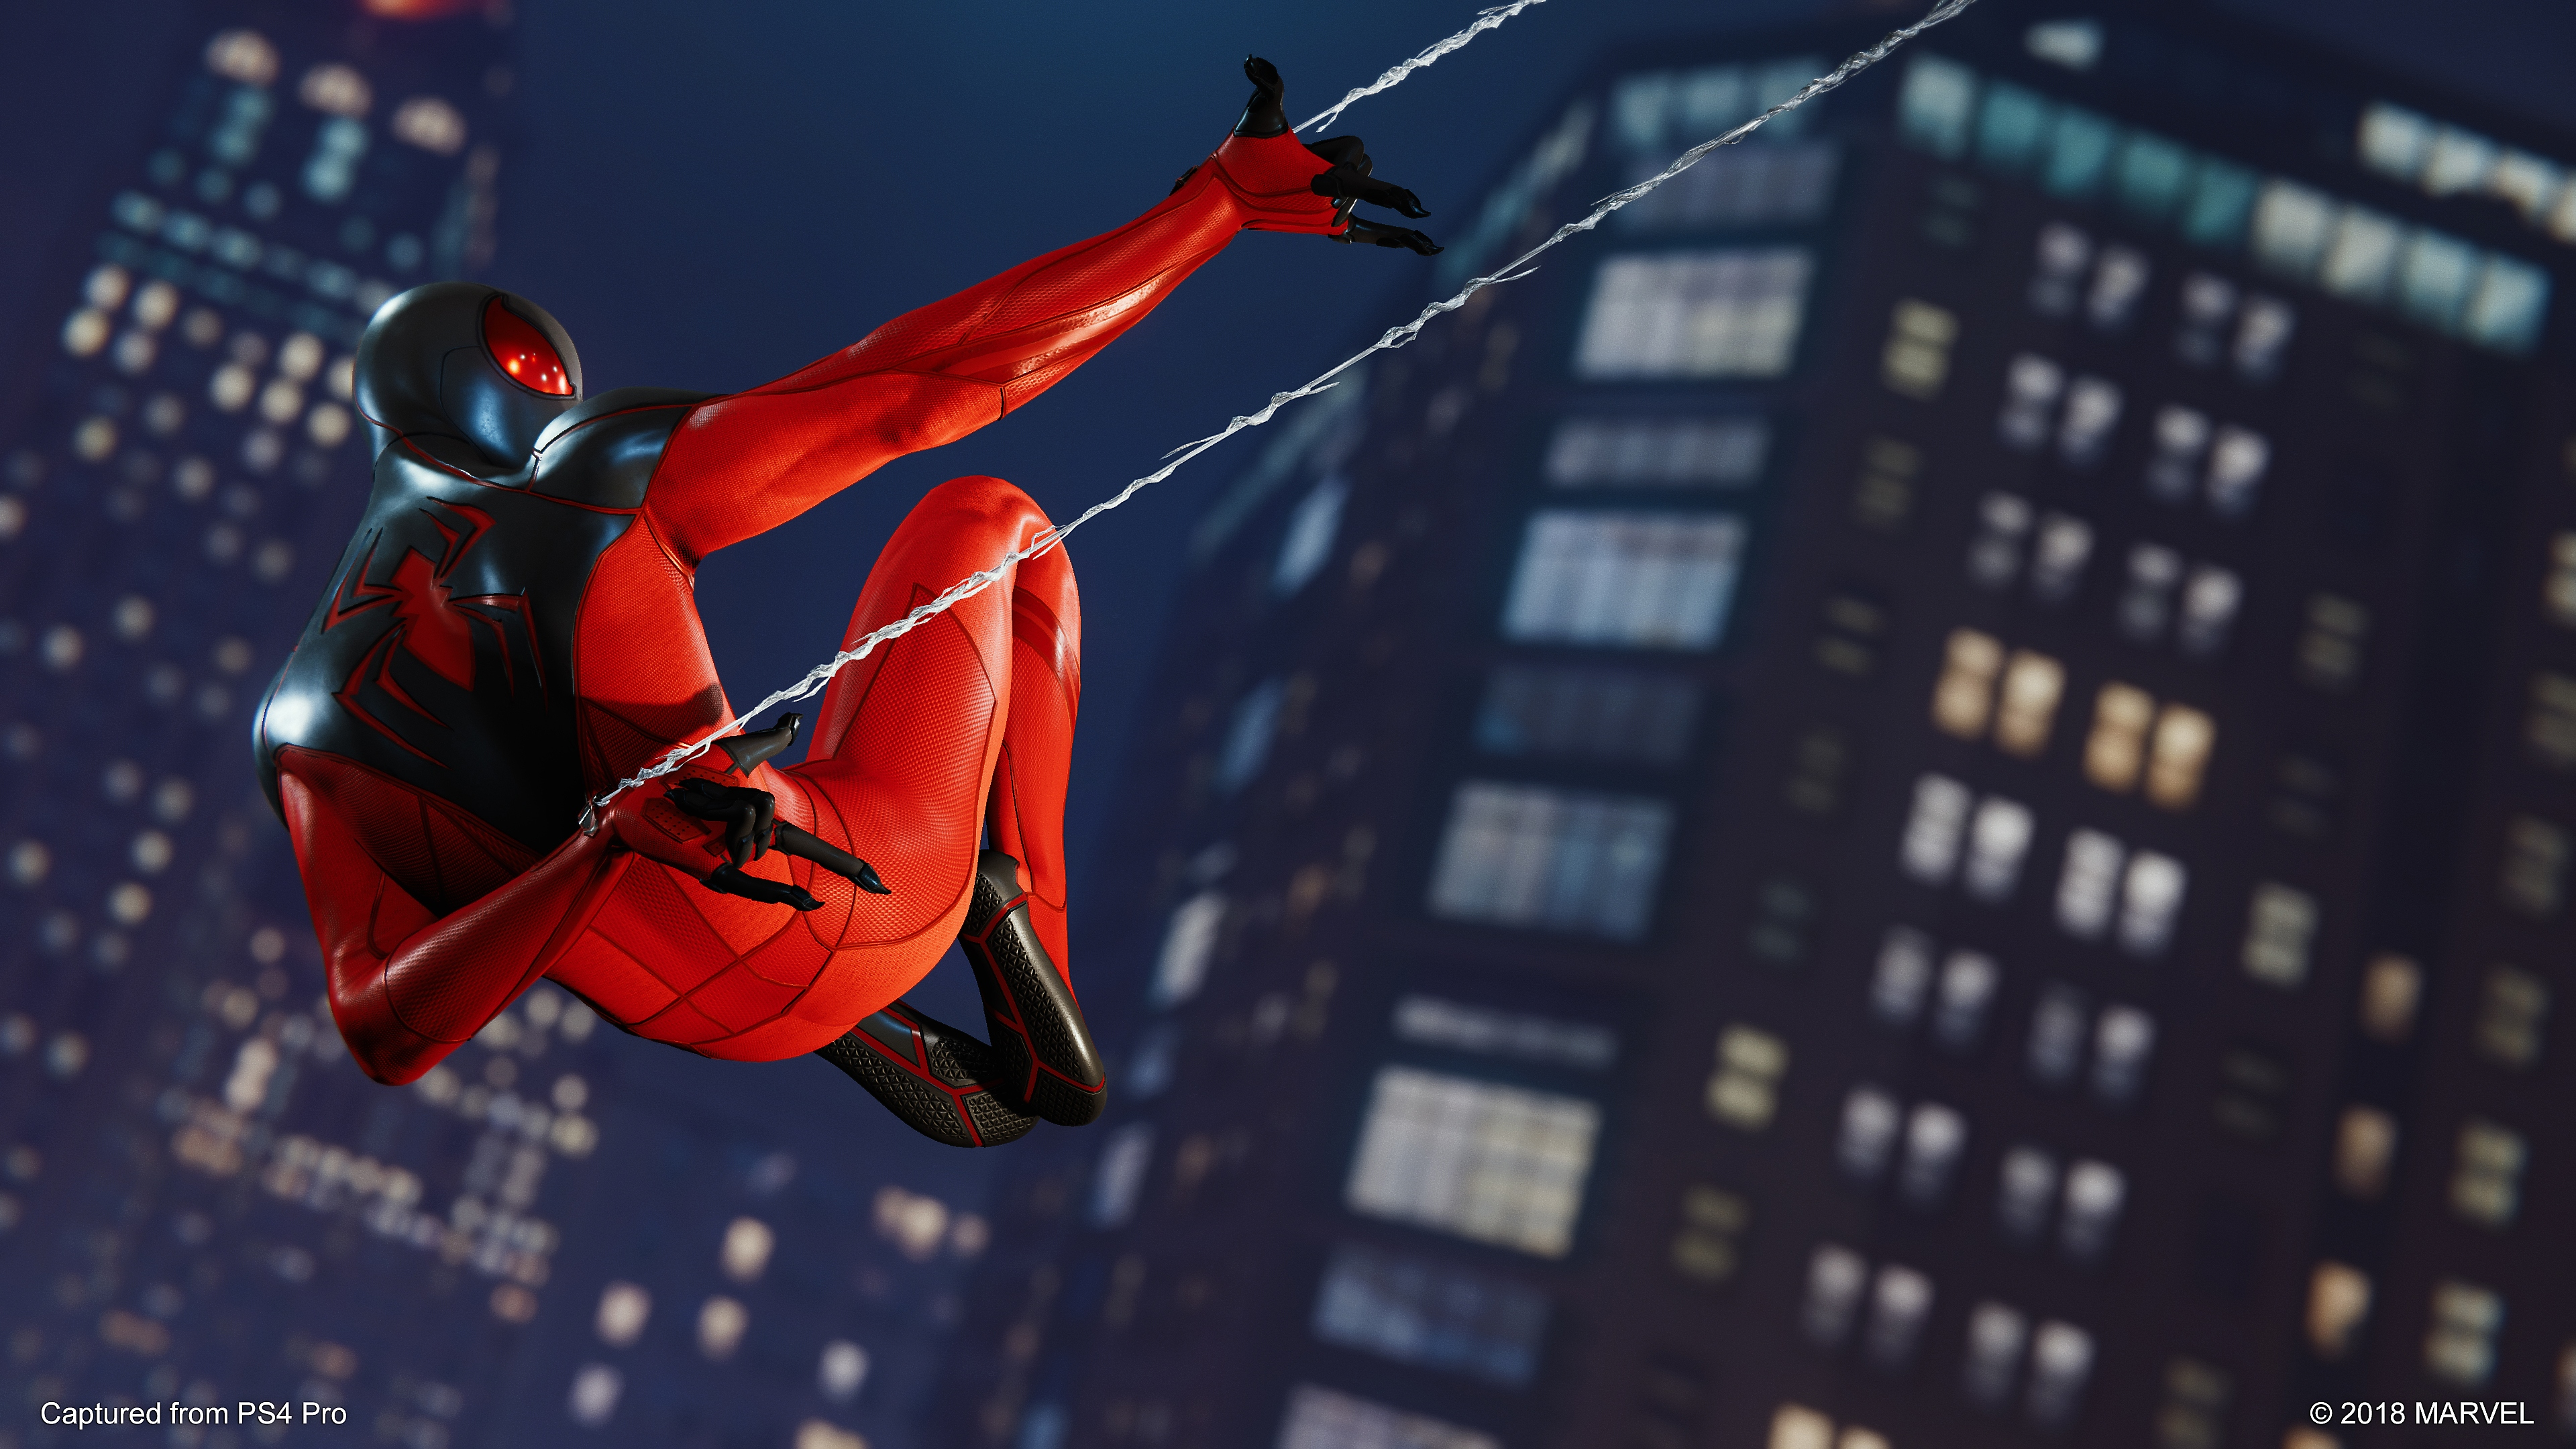 captura de pantalla de spider-man ps4